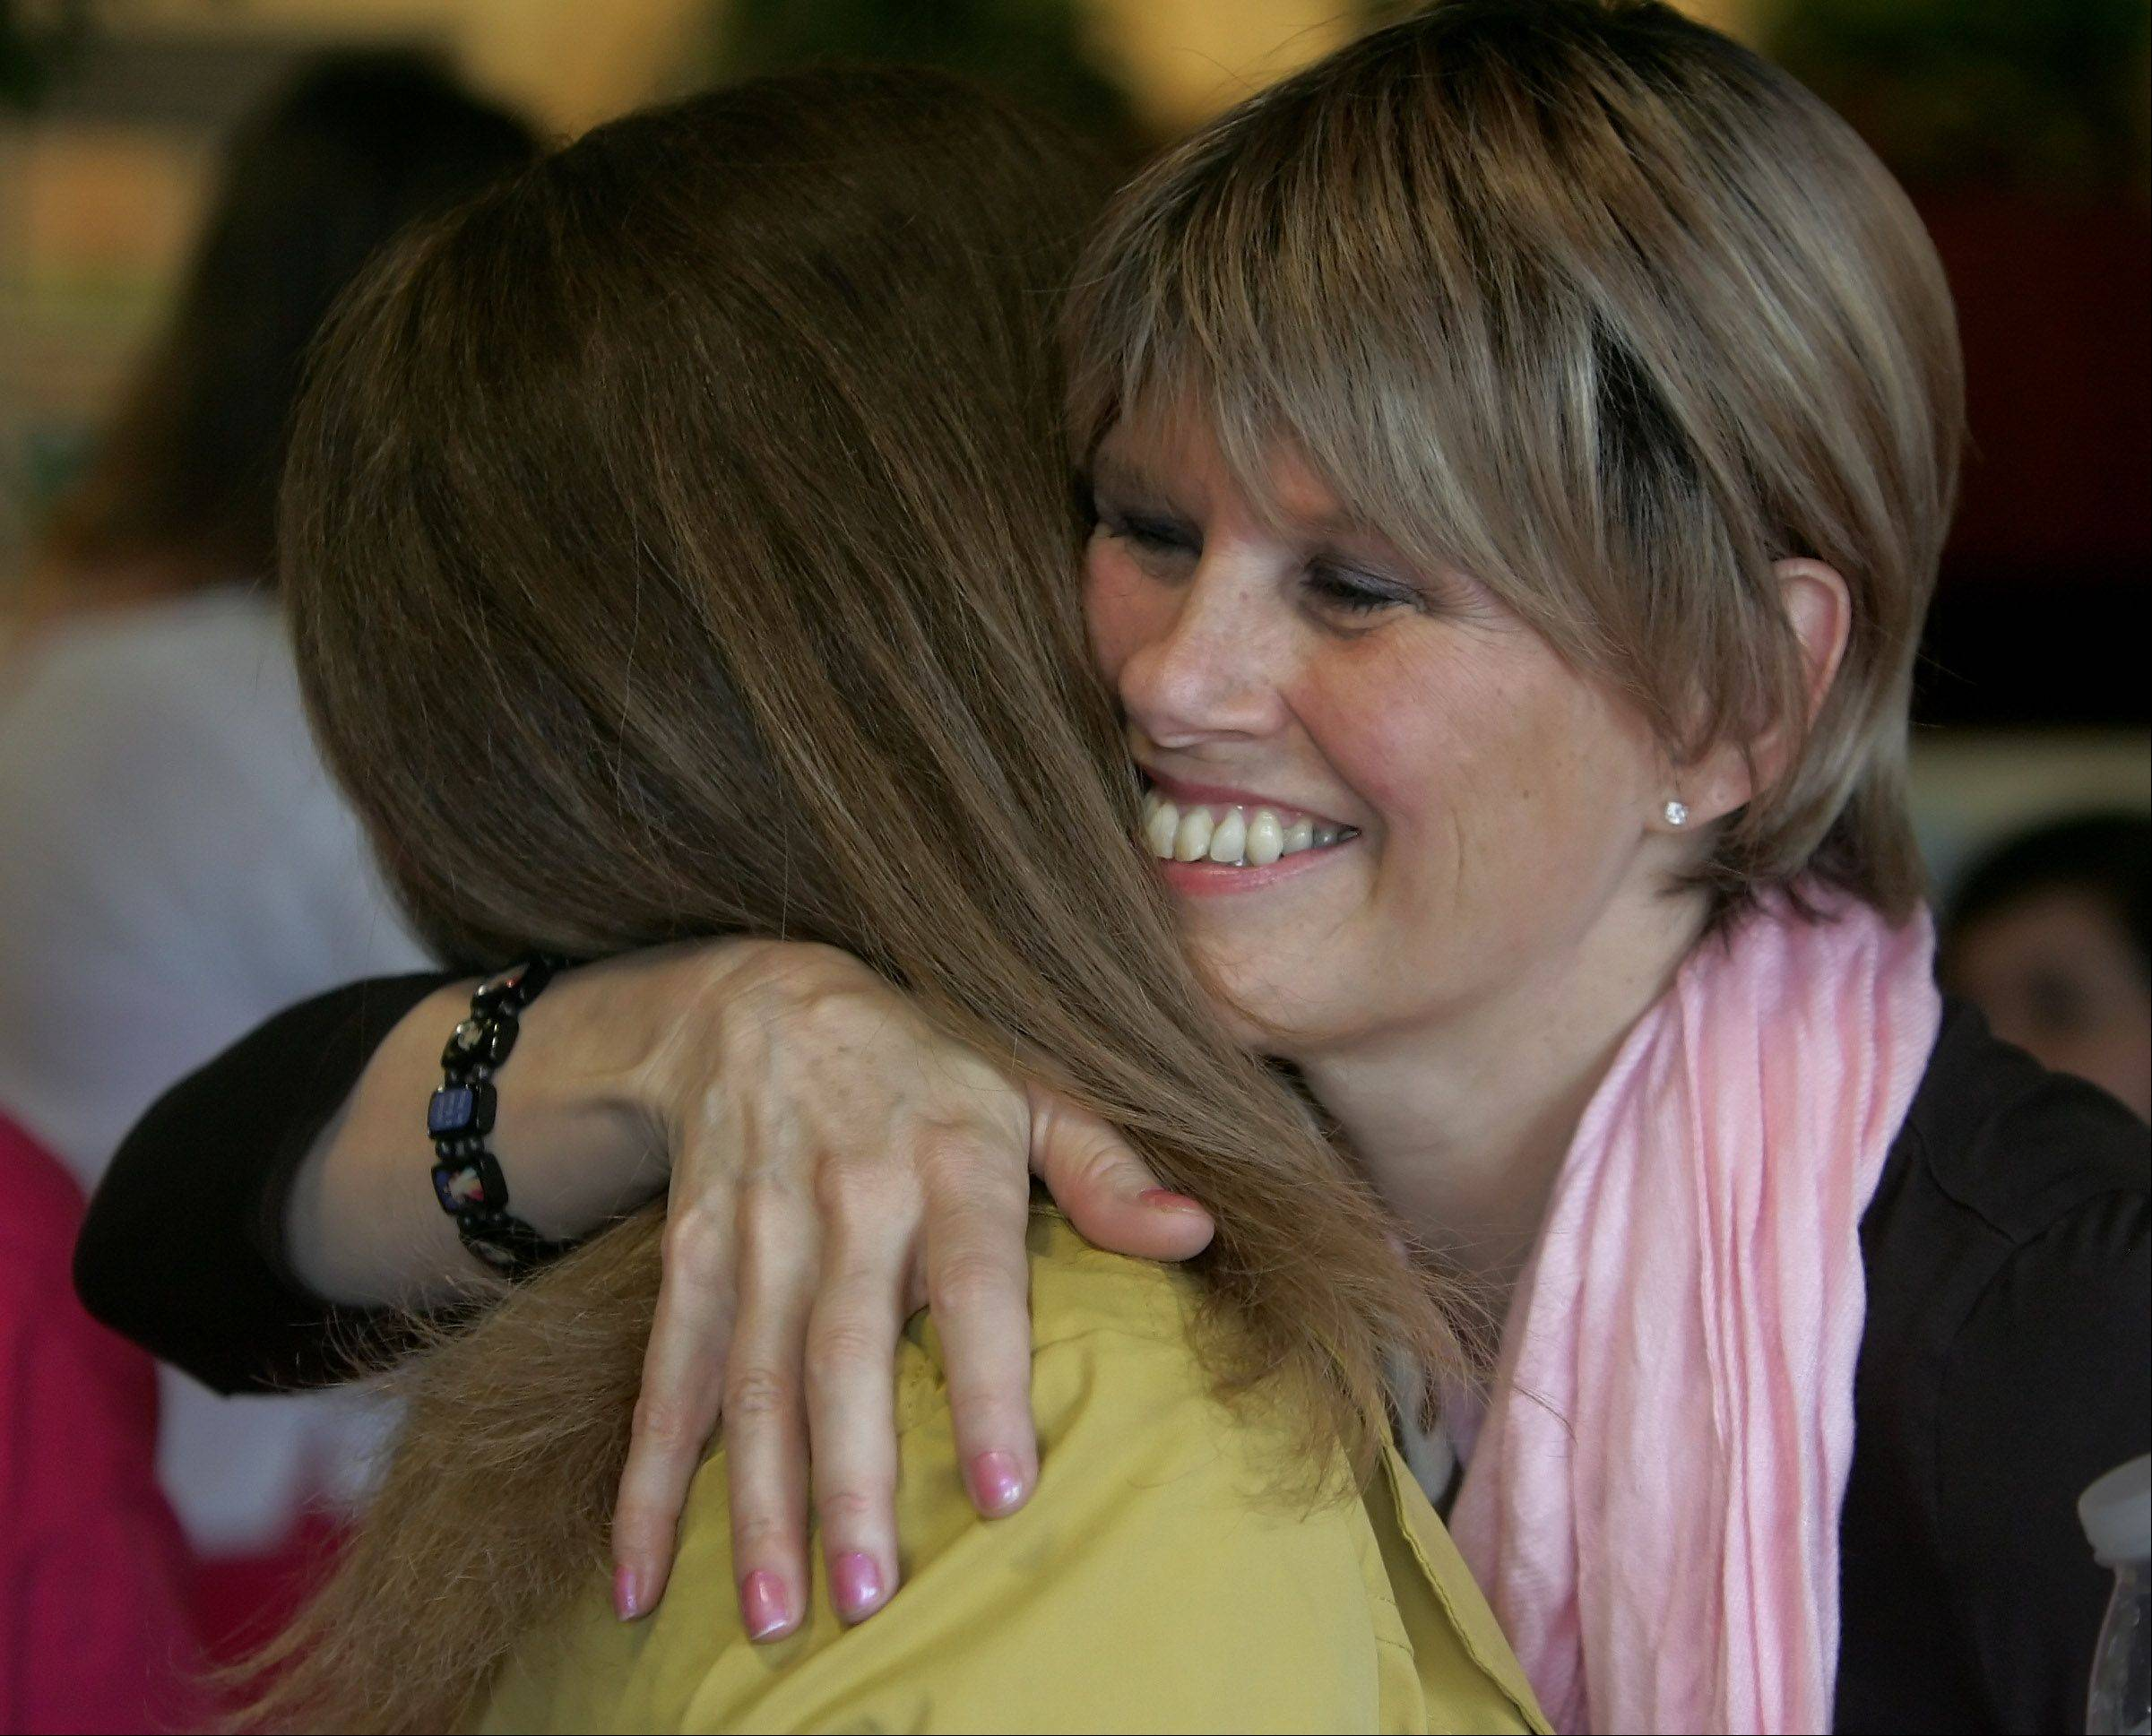 Mount Prospect teacher Linda Frahm receives a hug from a friend in 2012. Frahm is fighting cancer, and her colleagues at Lions Park Elementary School have organized a fundraiser for her that will include an appearance by writer-actress Bonnie Hunt.